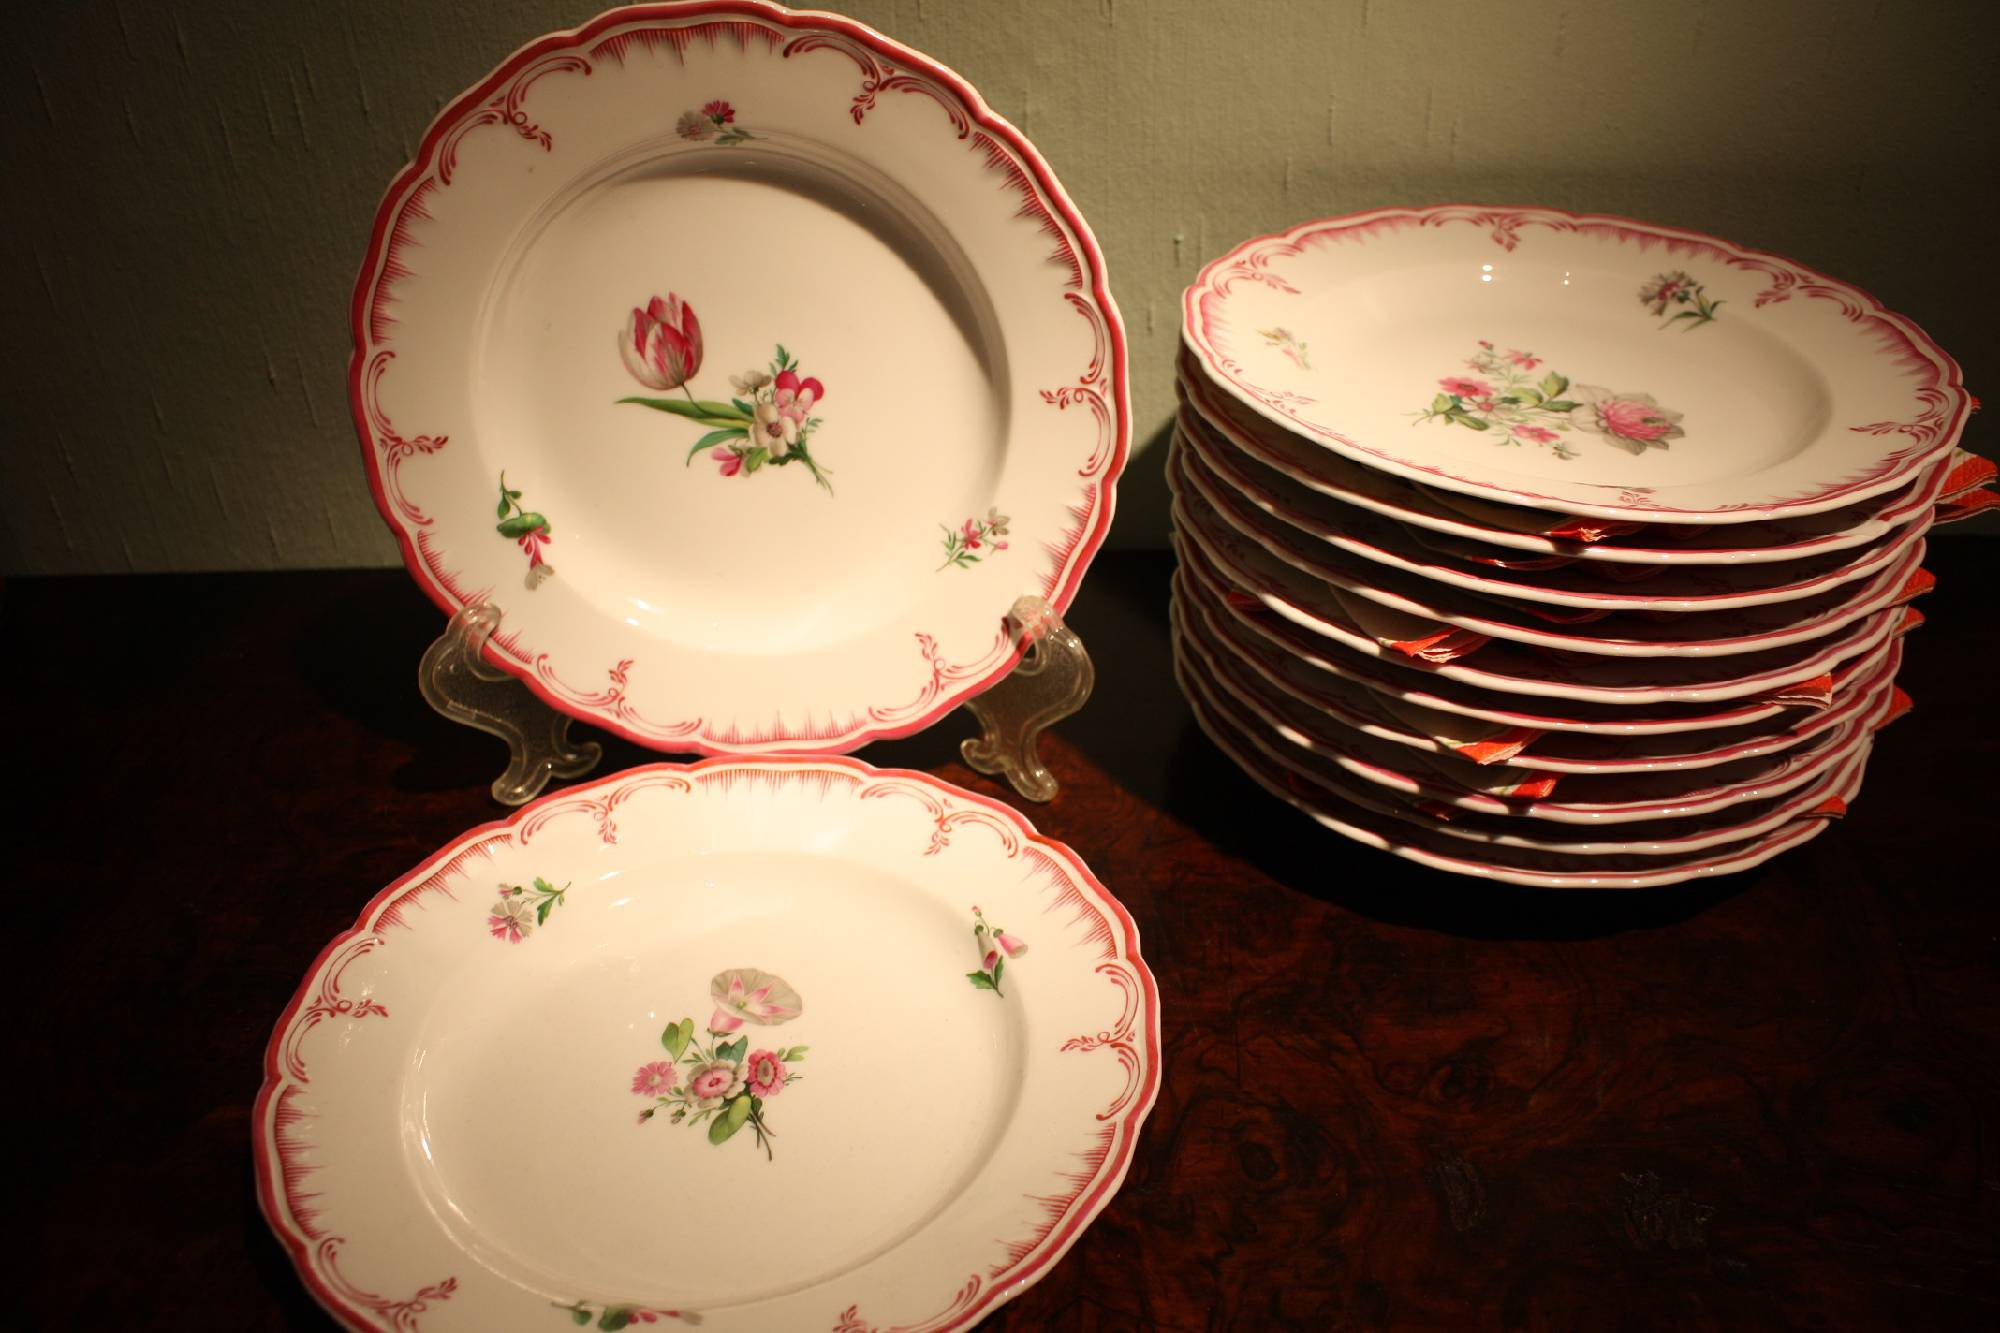 12 Mid-19th century hand-painted porcelain floral ornate KPM Berlin dessert plates